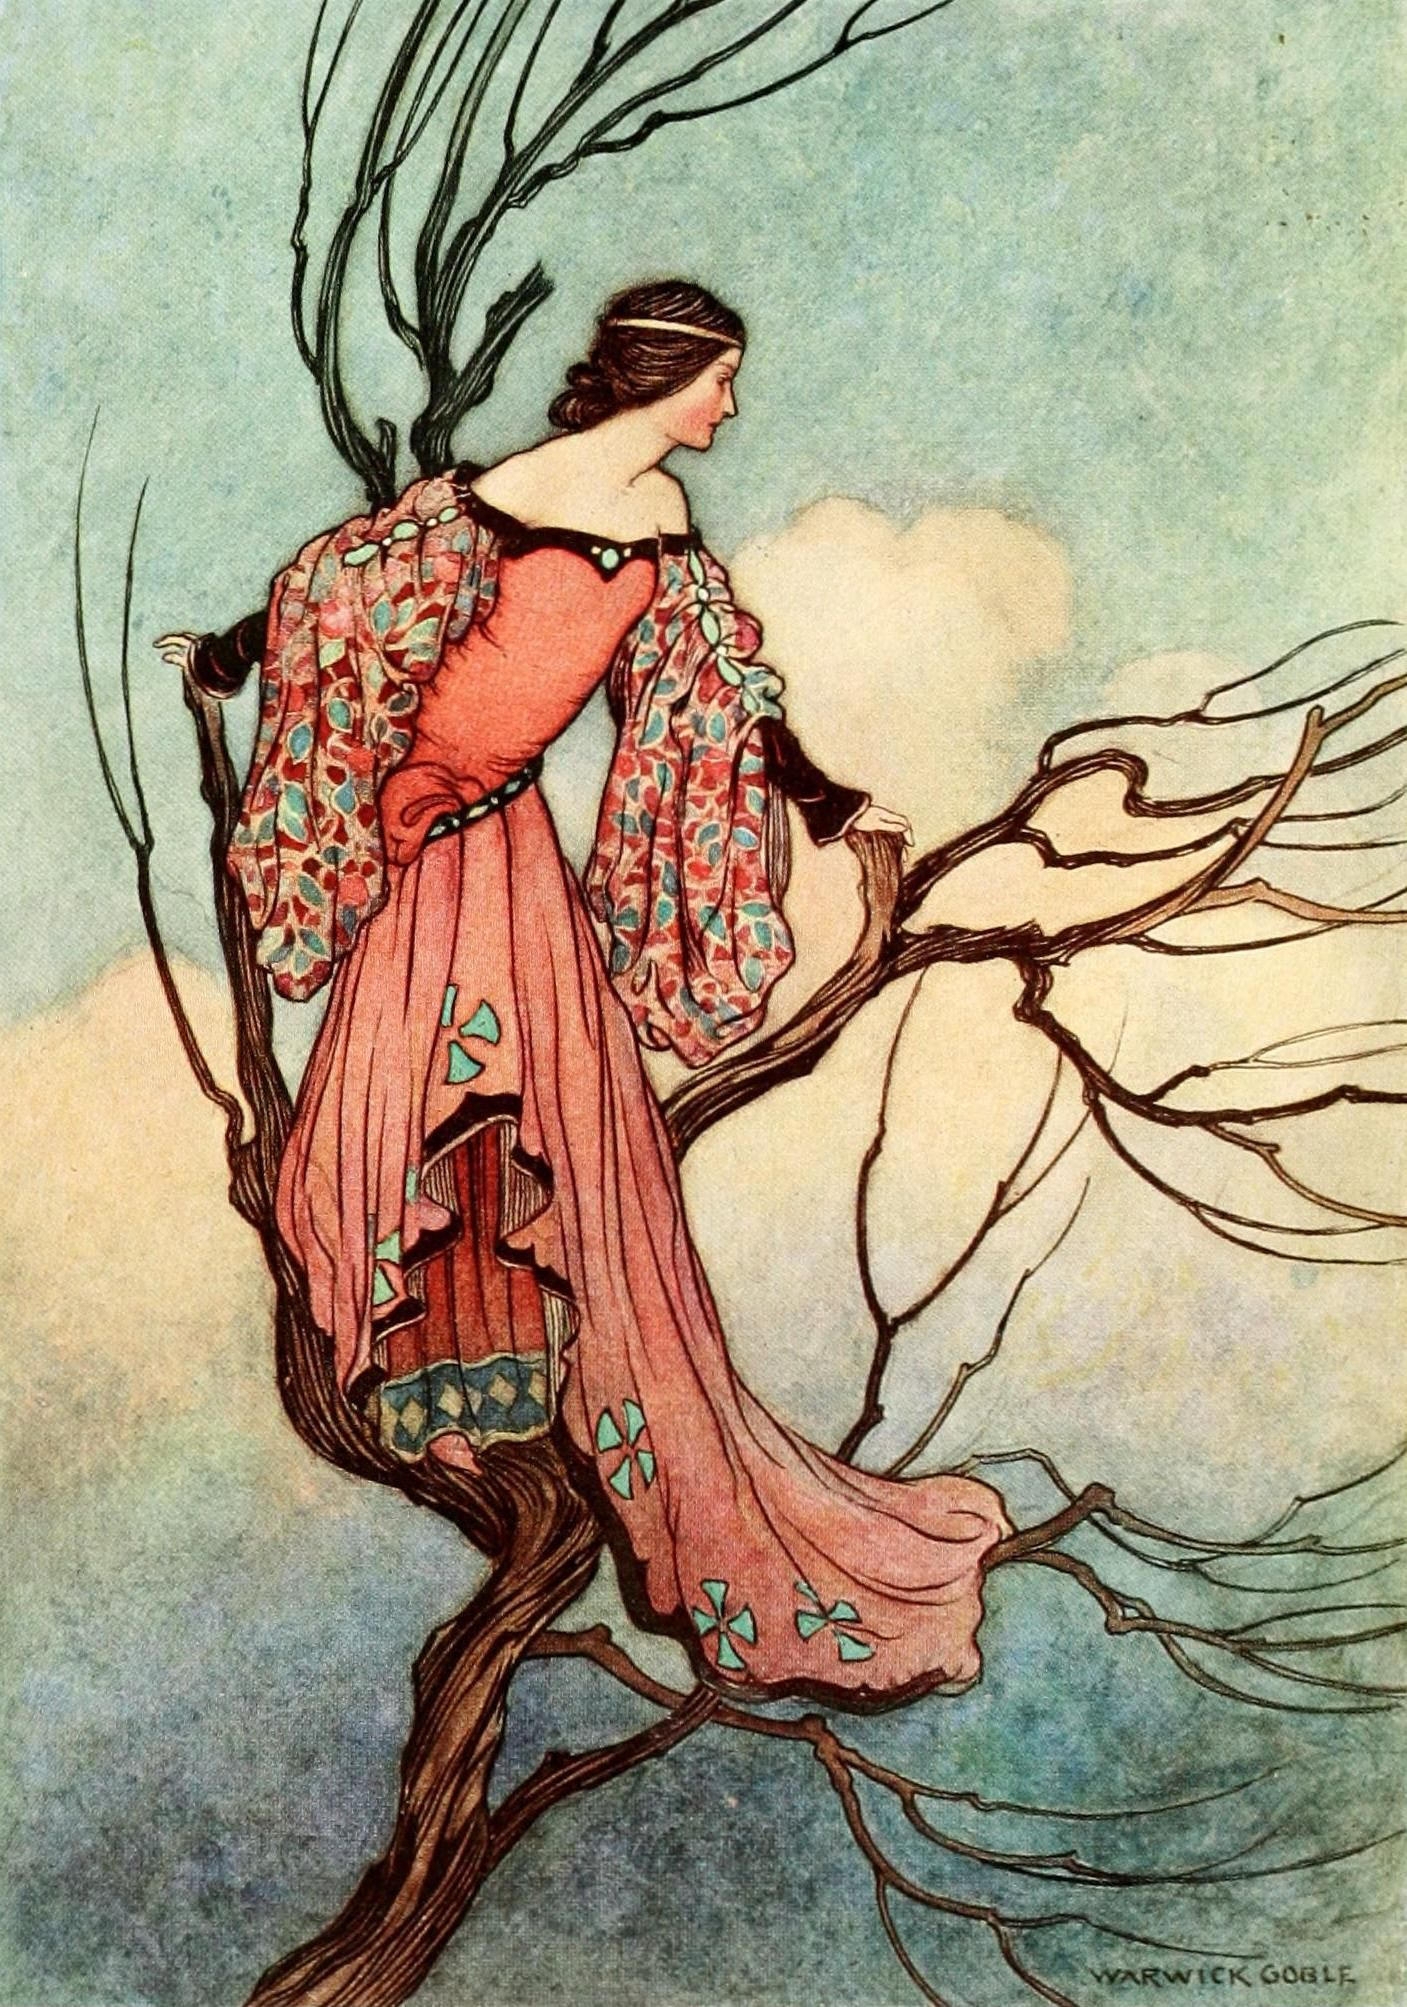 """Warwick Goble deserves to be better known as an illustrator from the Art Nouveau period. - """"At evening-tide she climbed up into a little tree, and purposed spending the night there, for fear of the wild beasts."""" by Warwick Goble to The Iron Stove"""